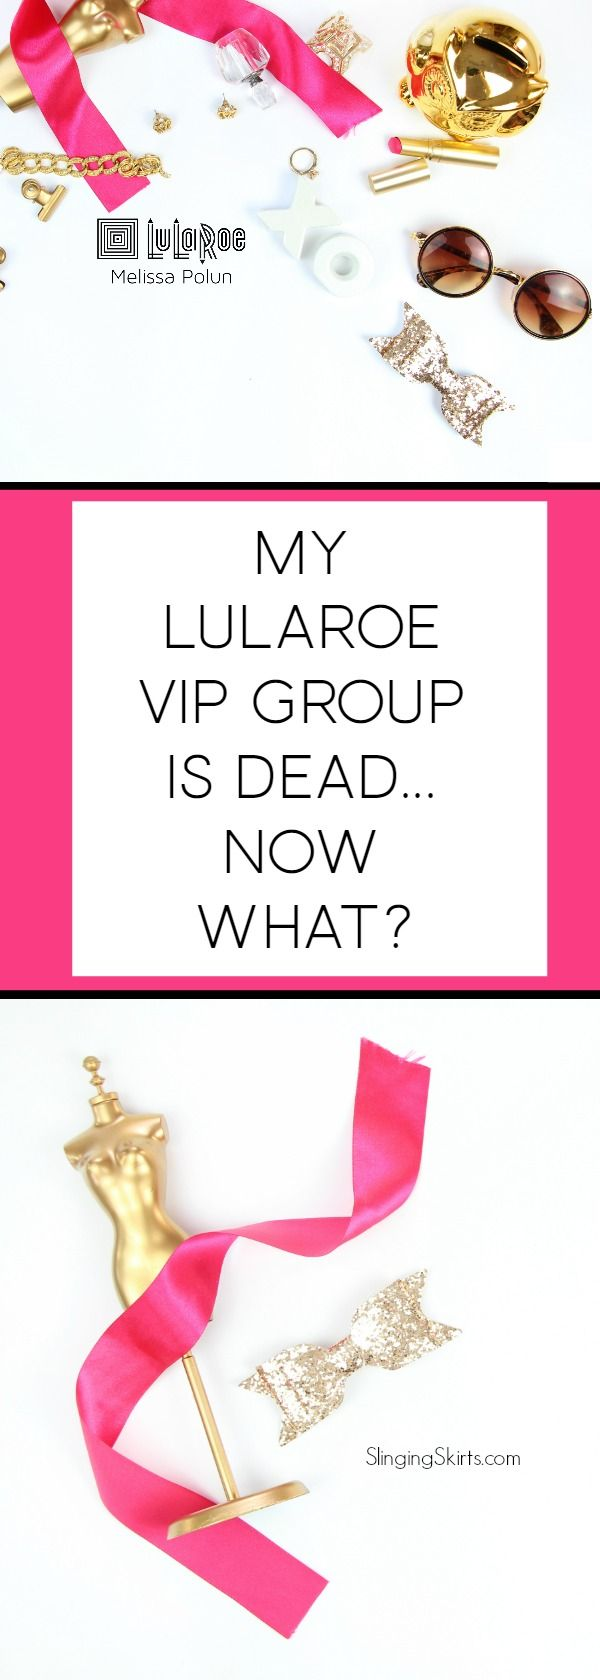 How to revive a dead LuLaRoe VIP group and how to build an engaged community of LuLaRoe customers!